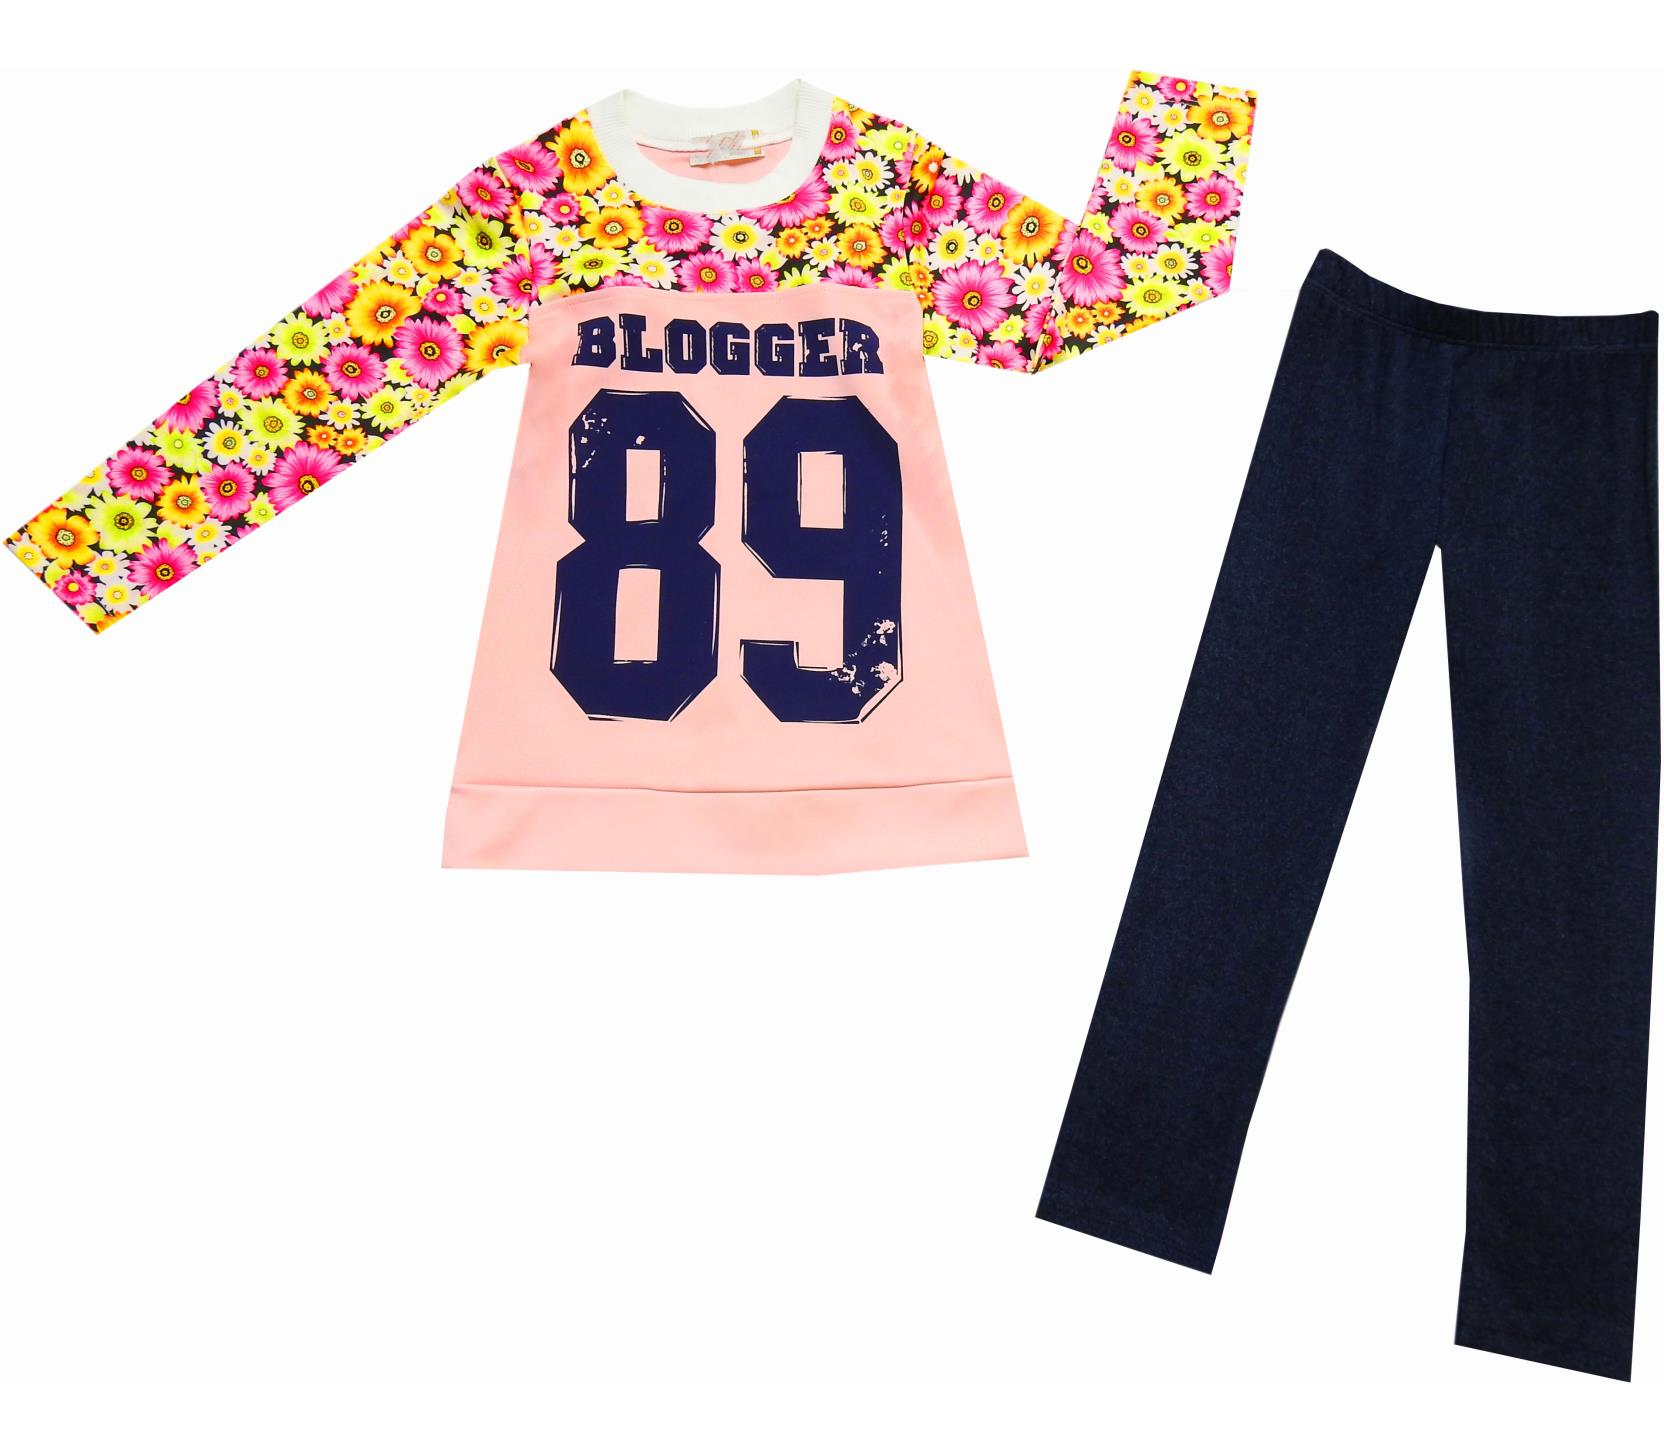 WHOLESALE 89 BLOGGER PRINT AND FLOWER EMBROIDERY TOP AND TROUSER DOUBLE SET FOR GIRL (6-7-8 AGE)